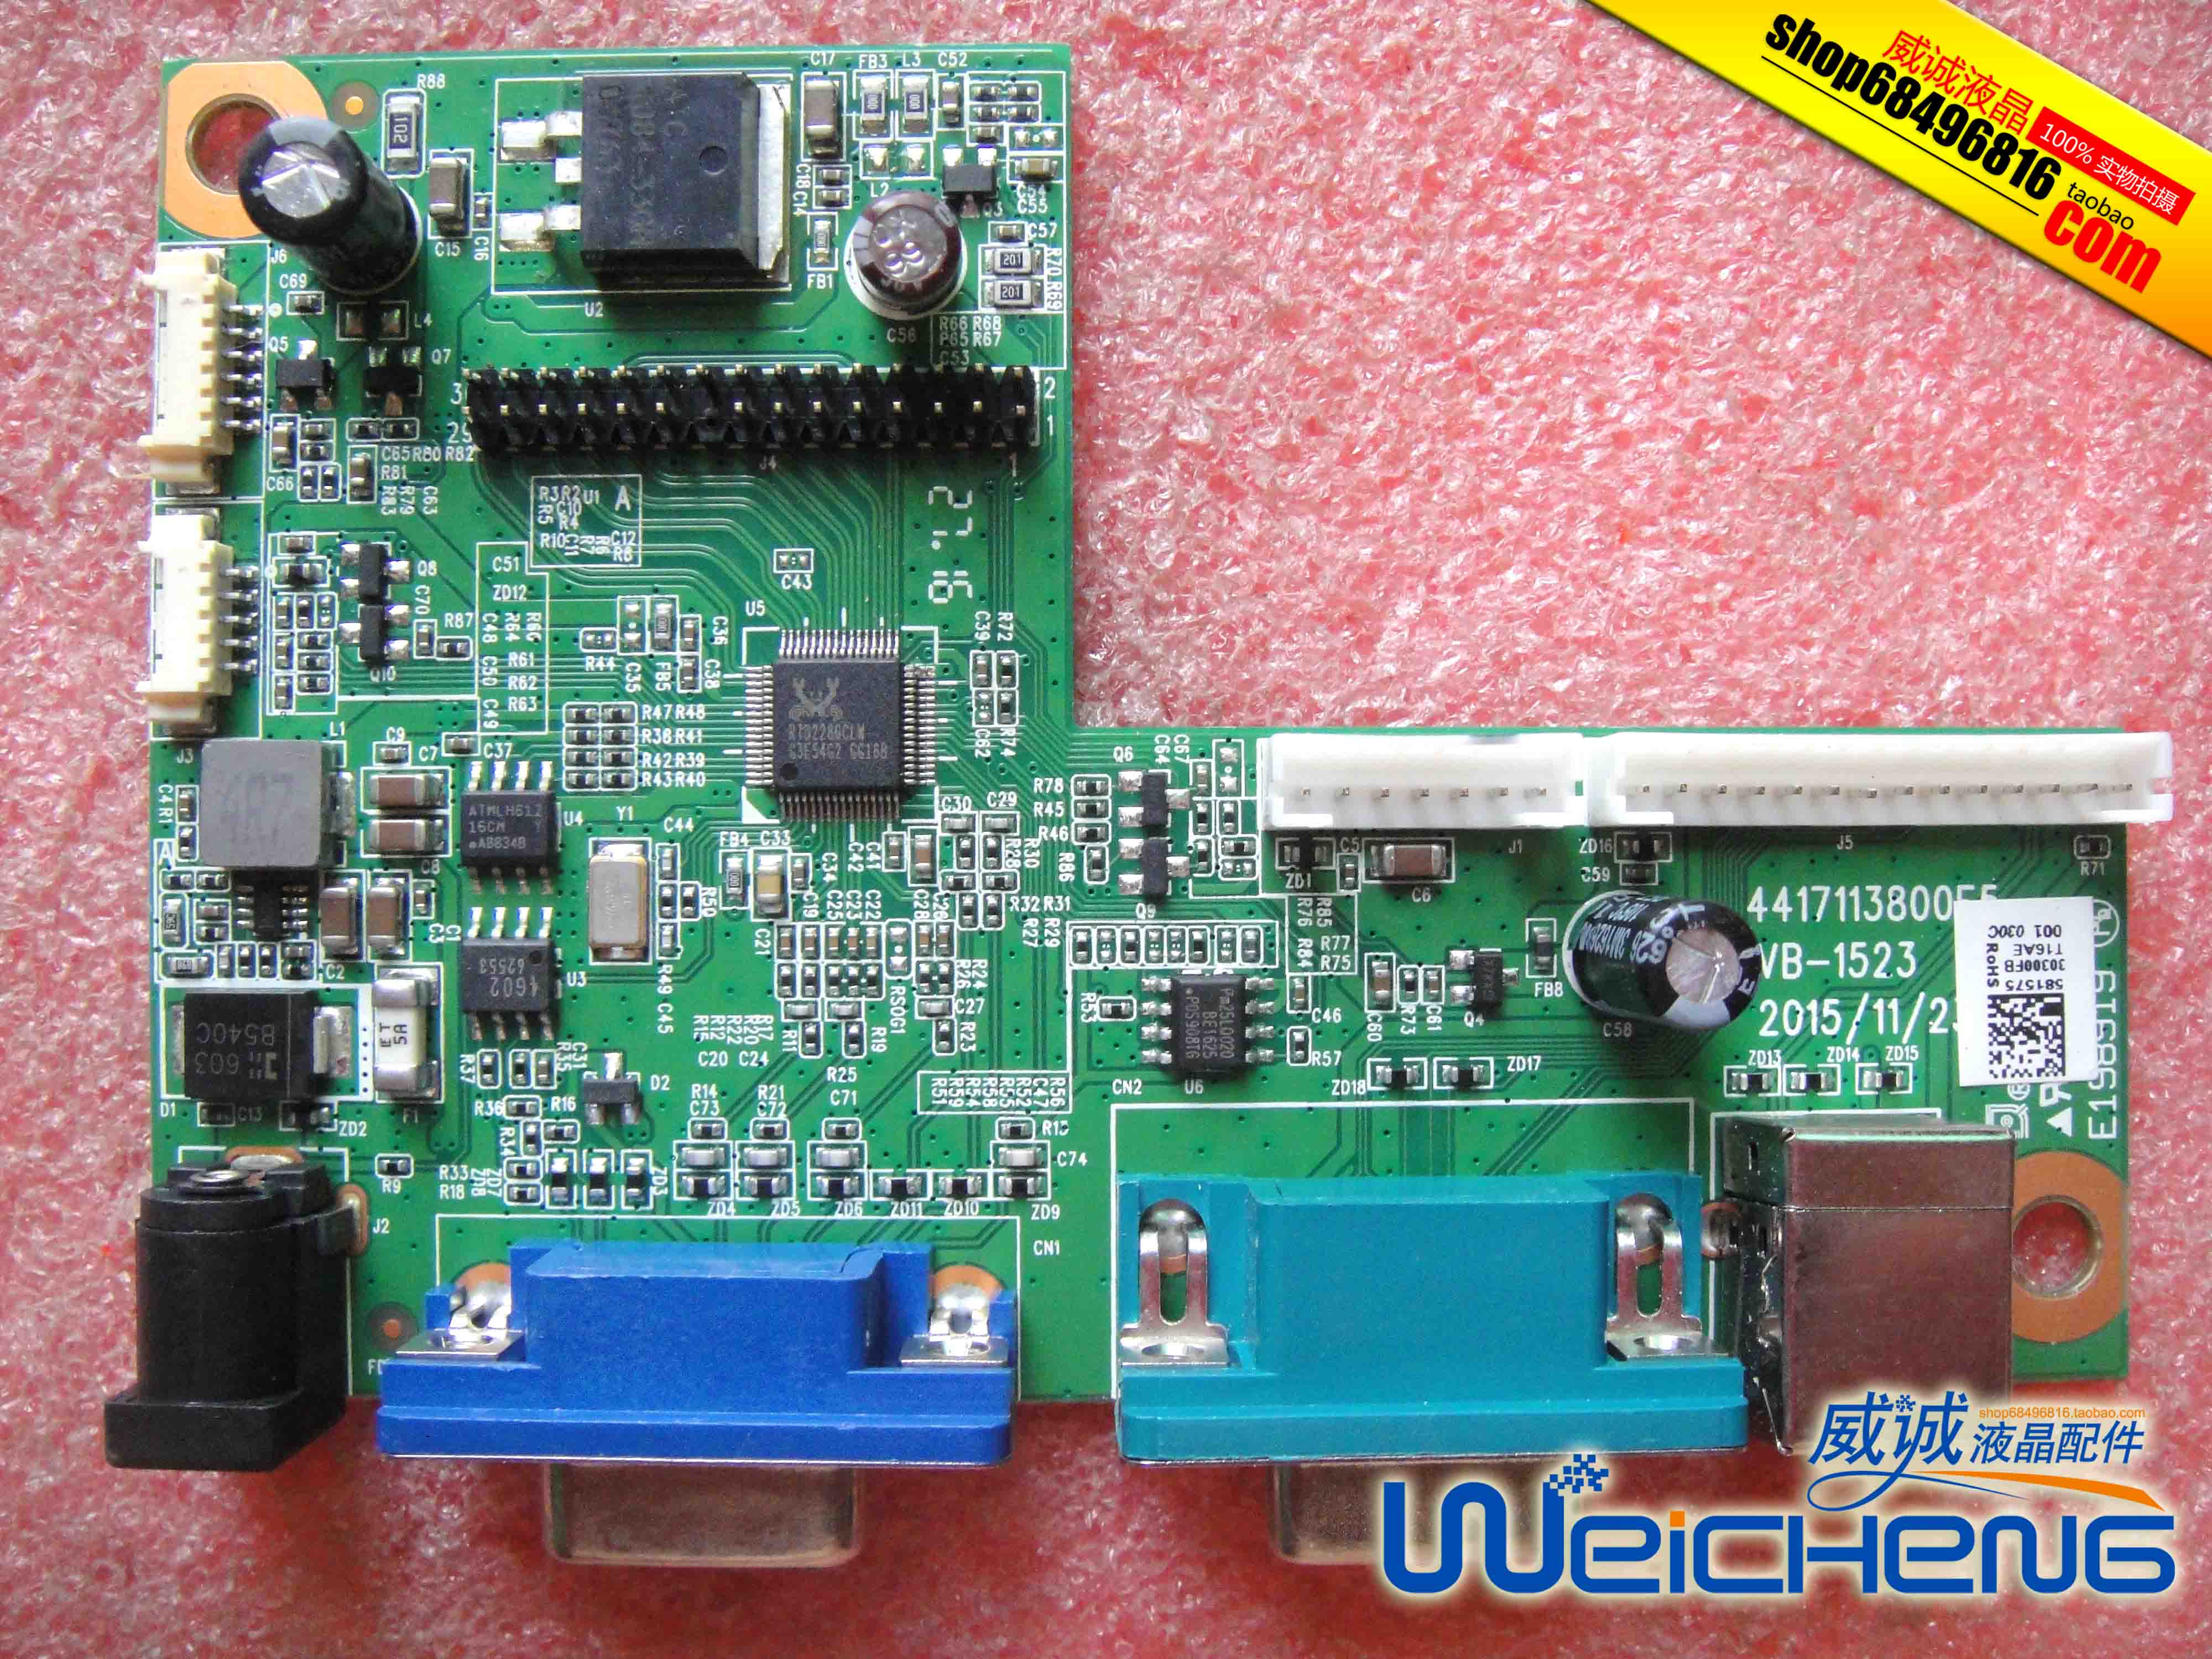 4417113800F5 VB-1523 Industrial Control Driver Board, Touch The Mainboard